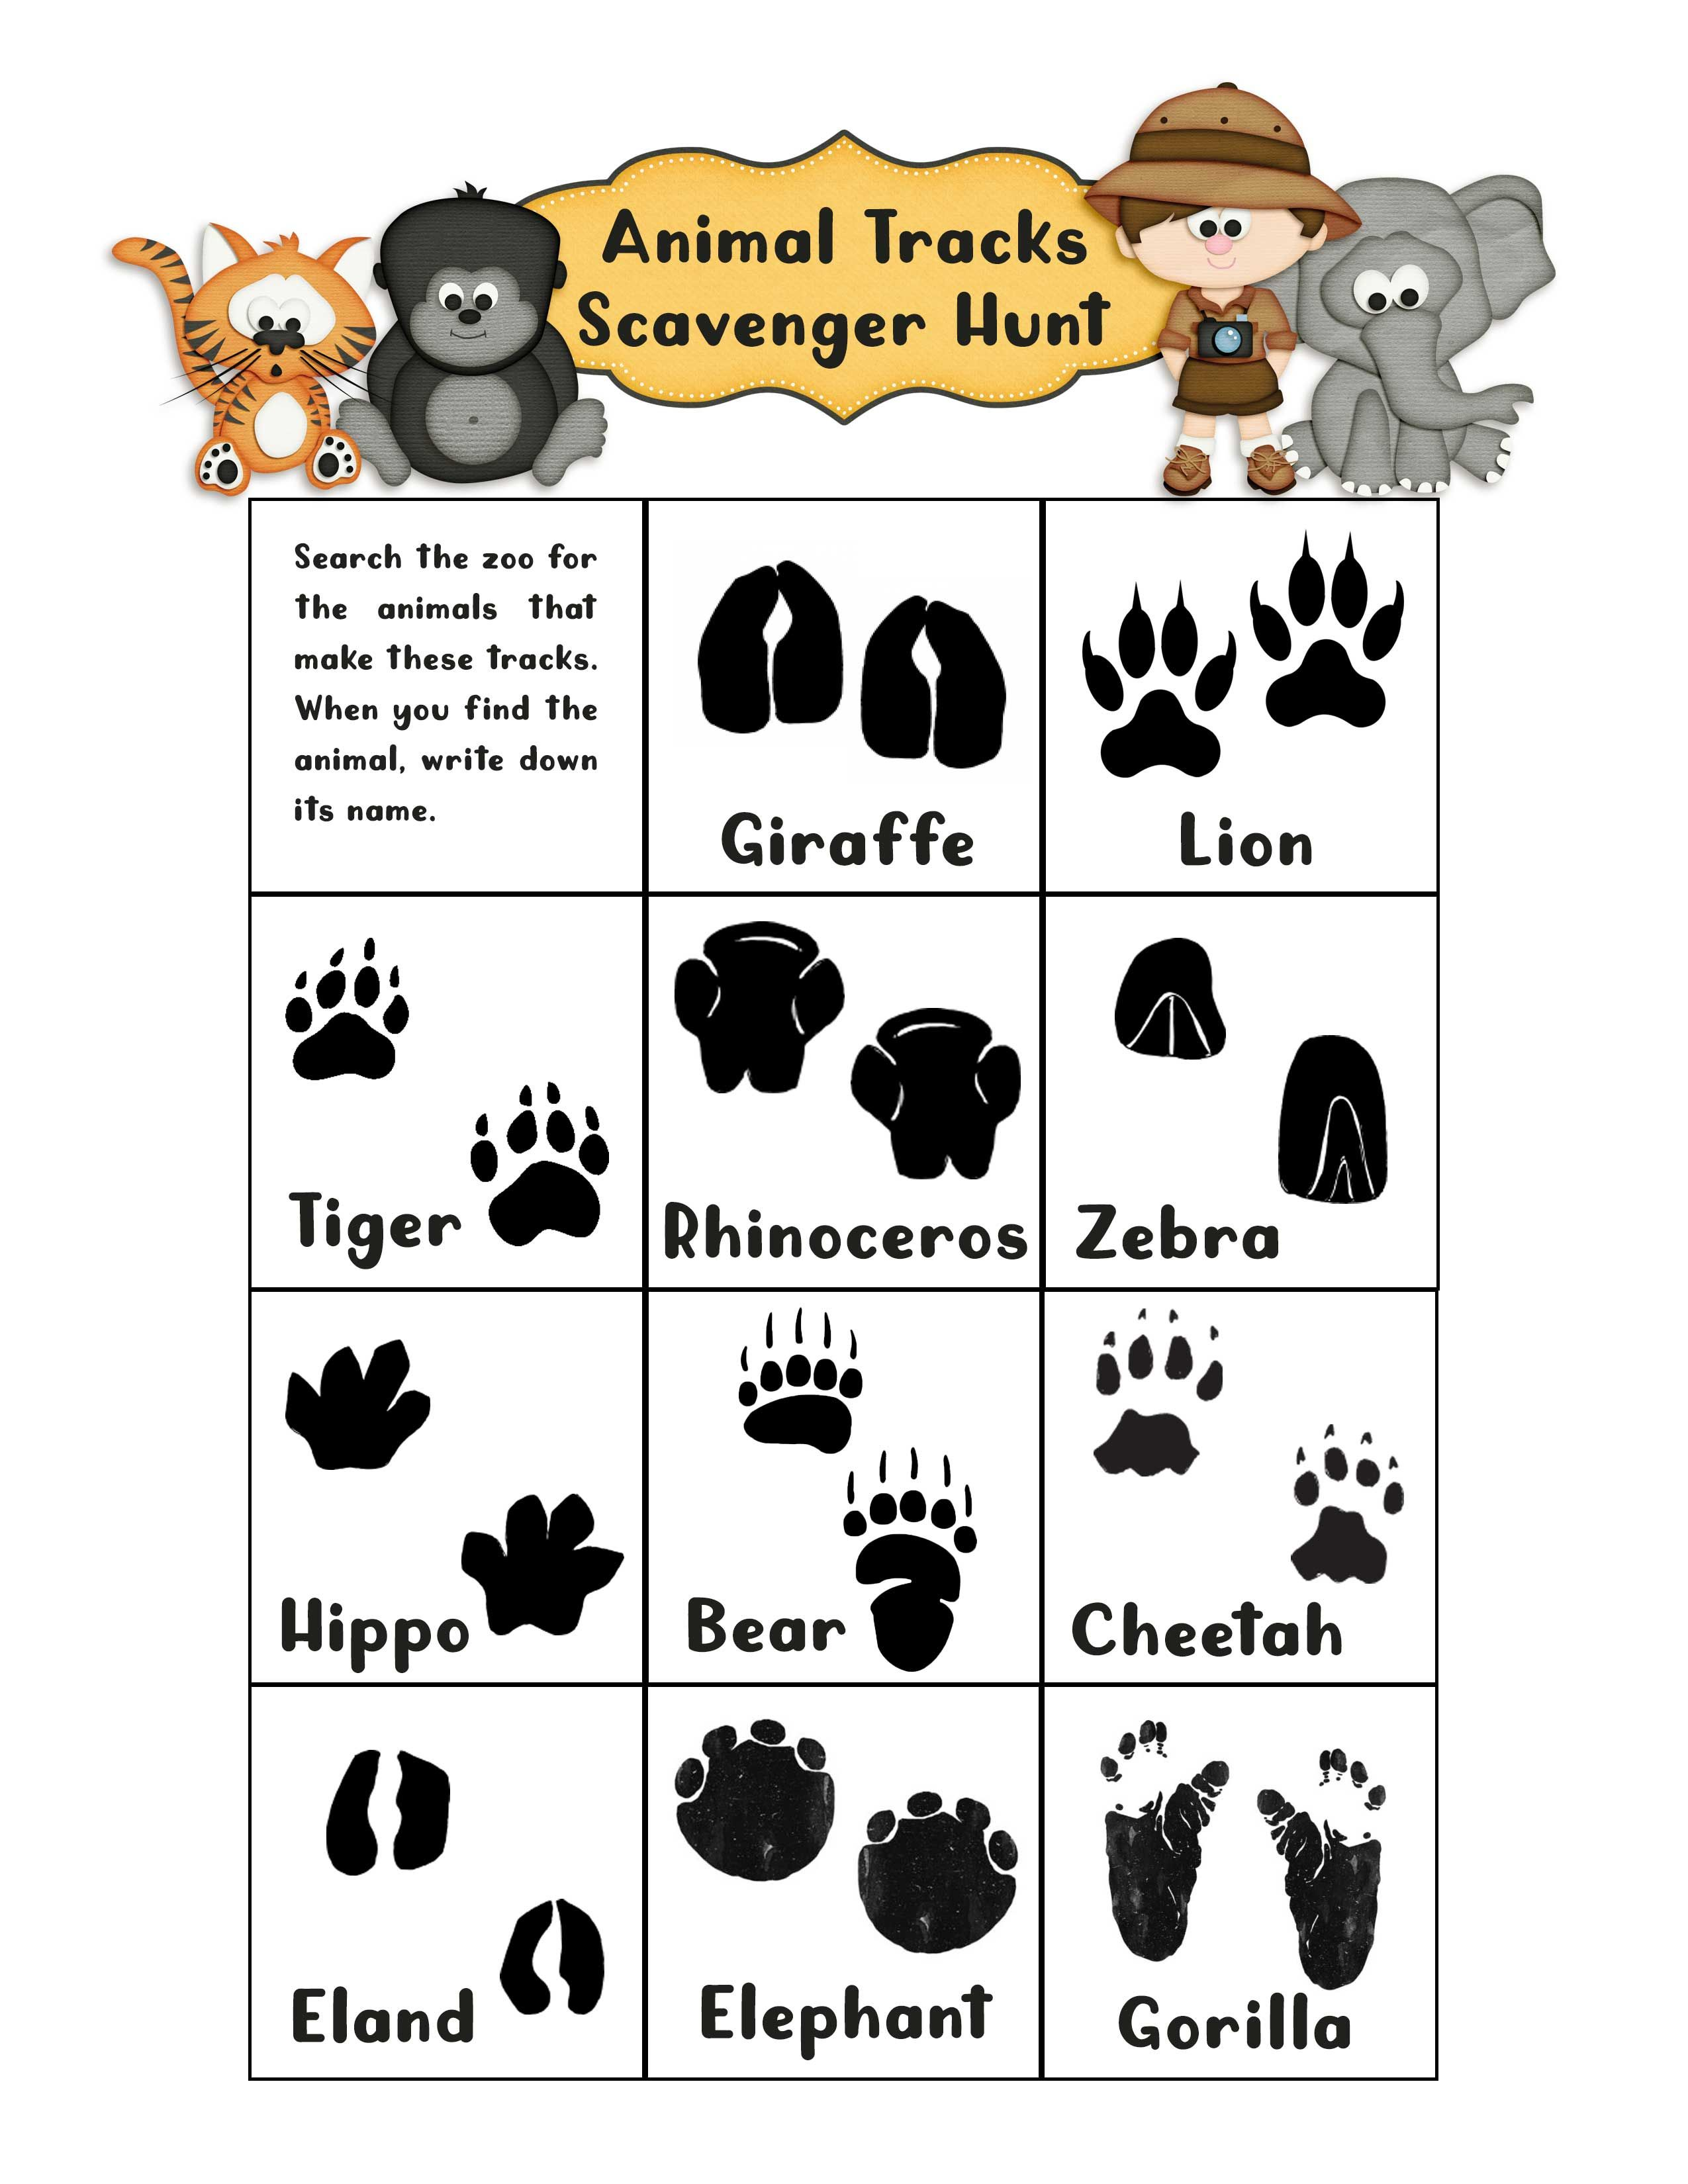 Animal Tracks Scavenger Hunt Created Using Scraps N Pieces